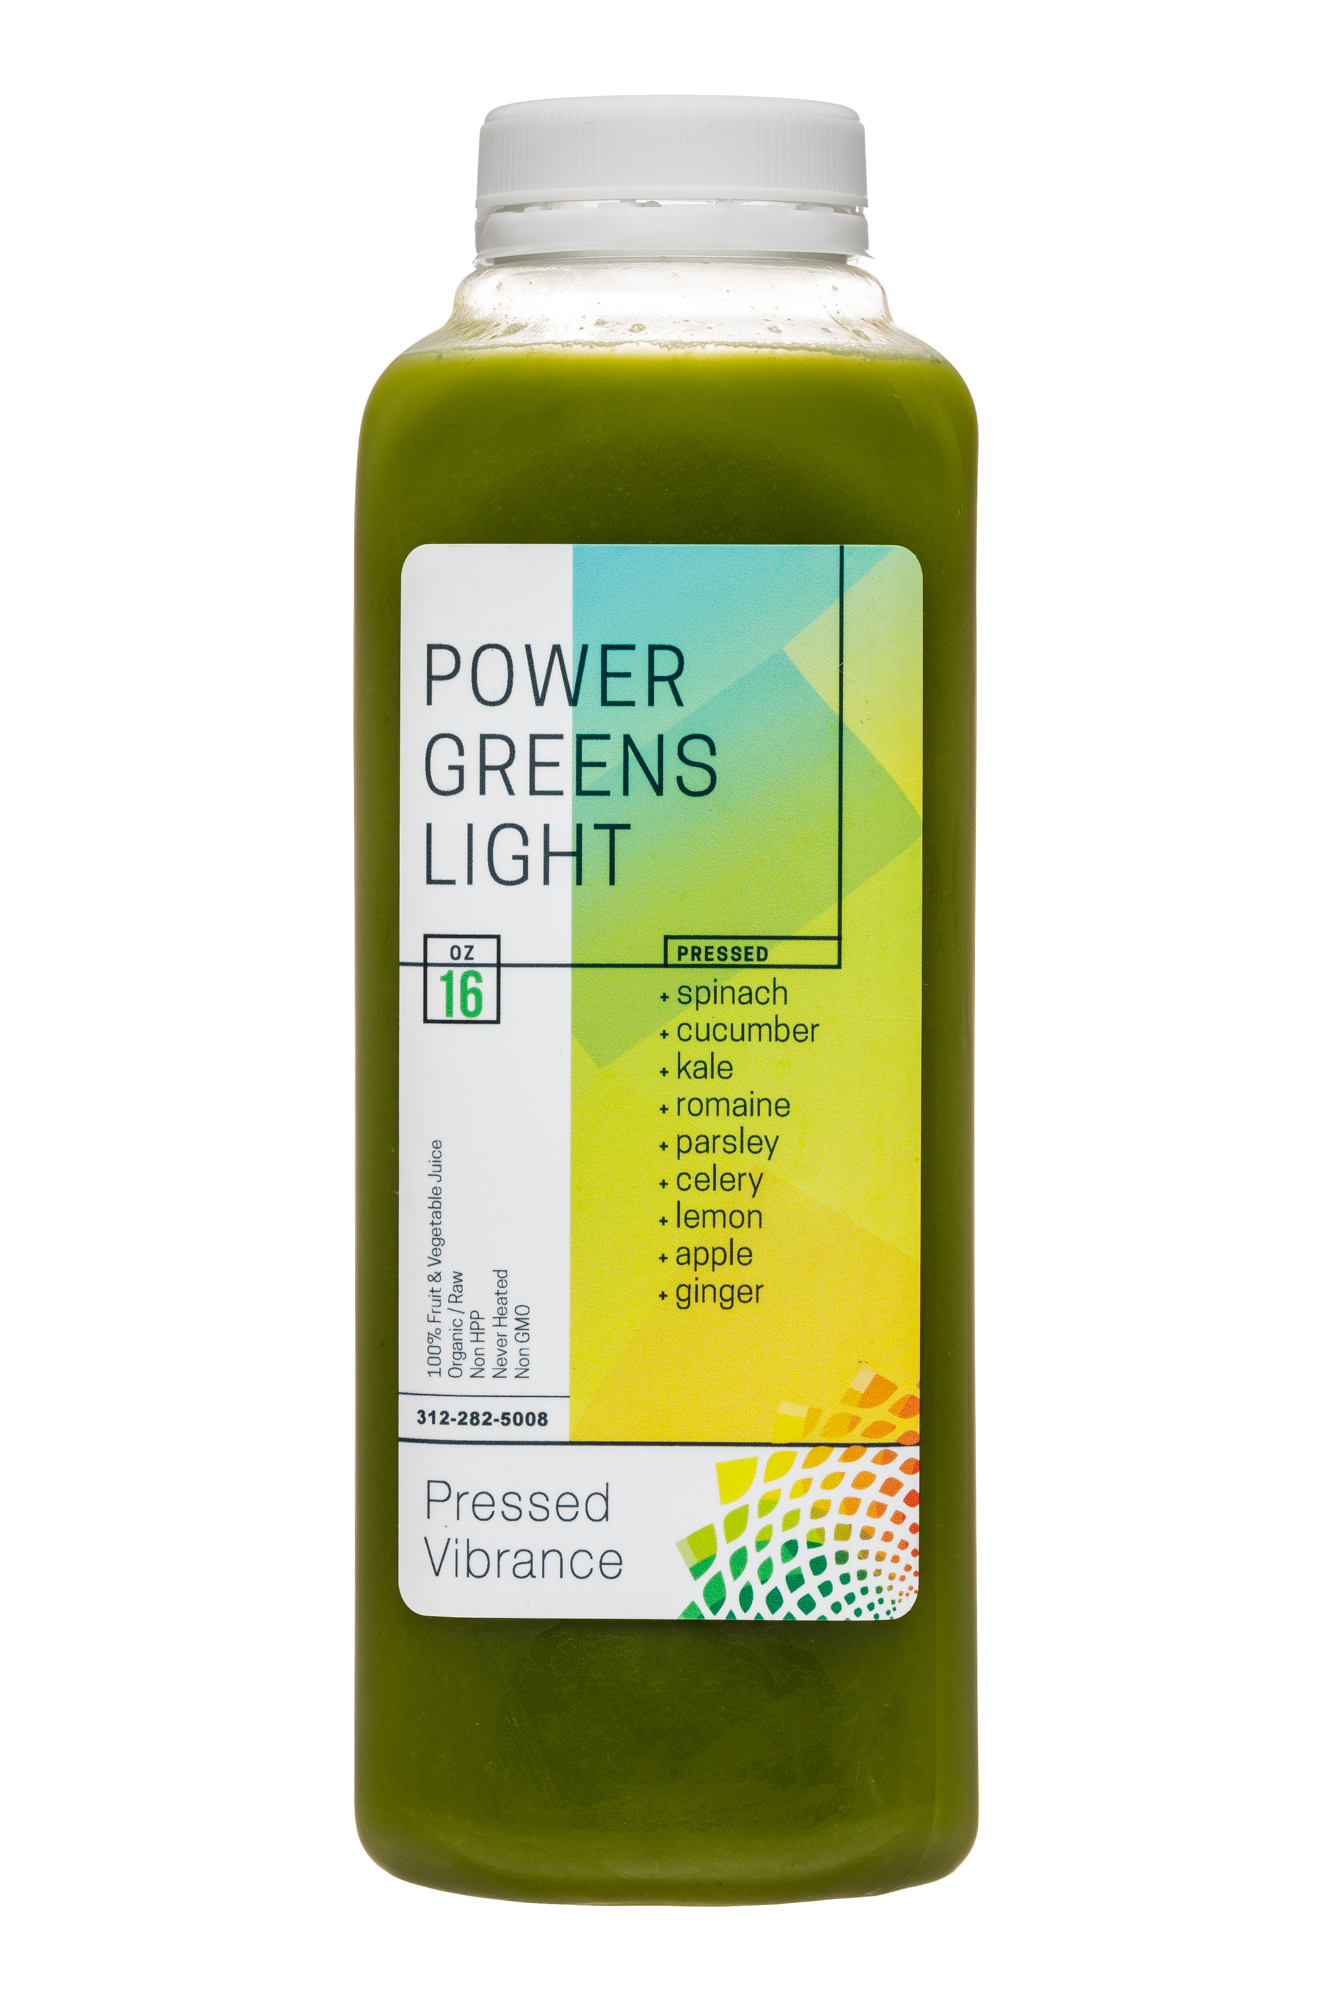 Pressed Vibrance: PressedVibrance-16oz-PowerGreensLight